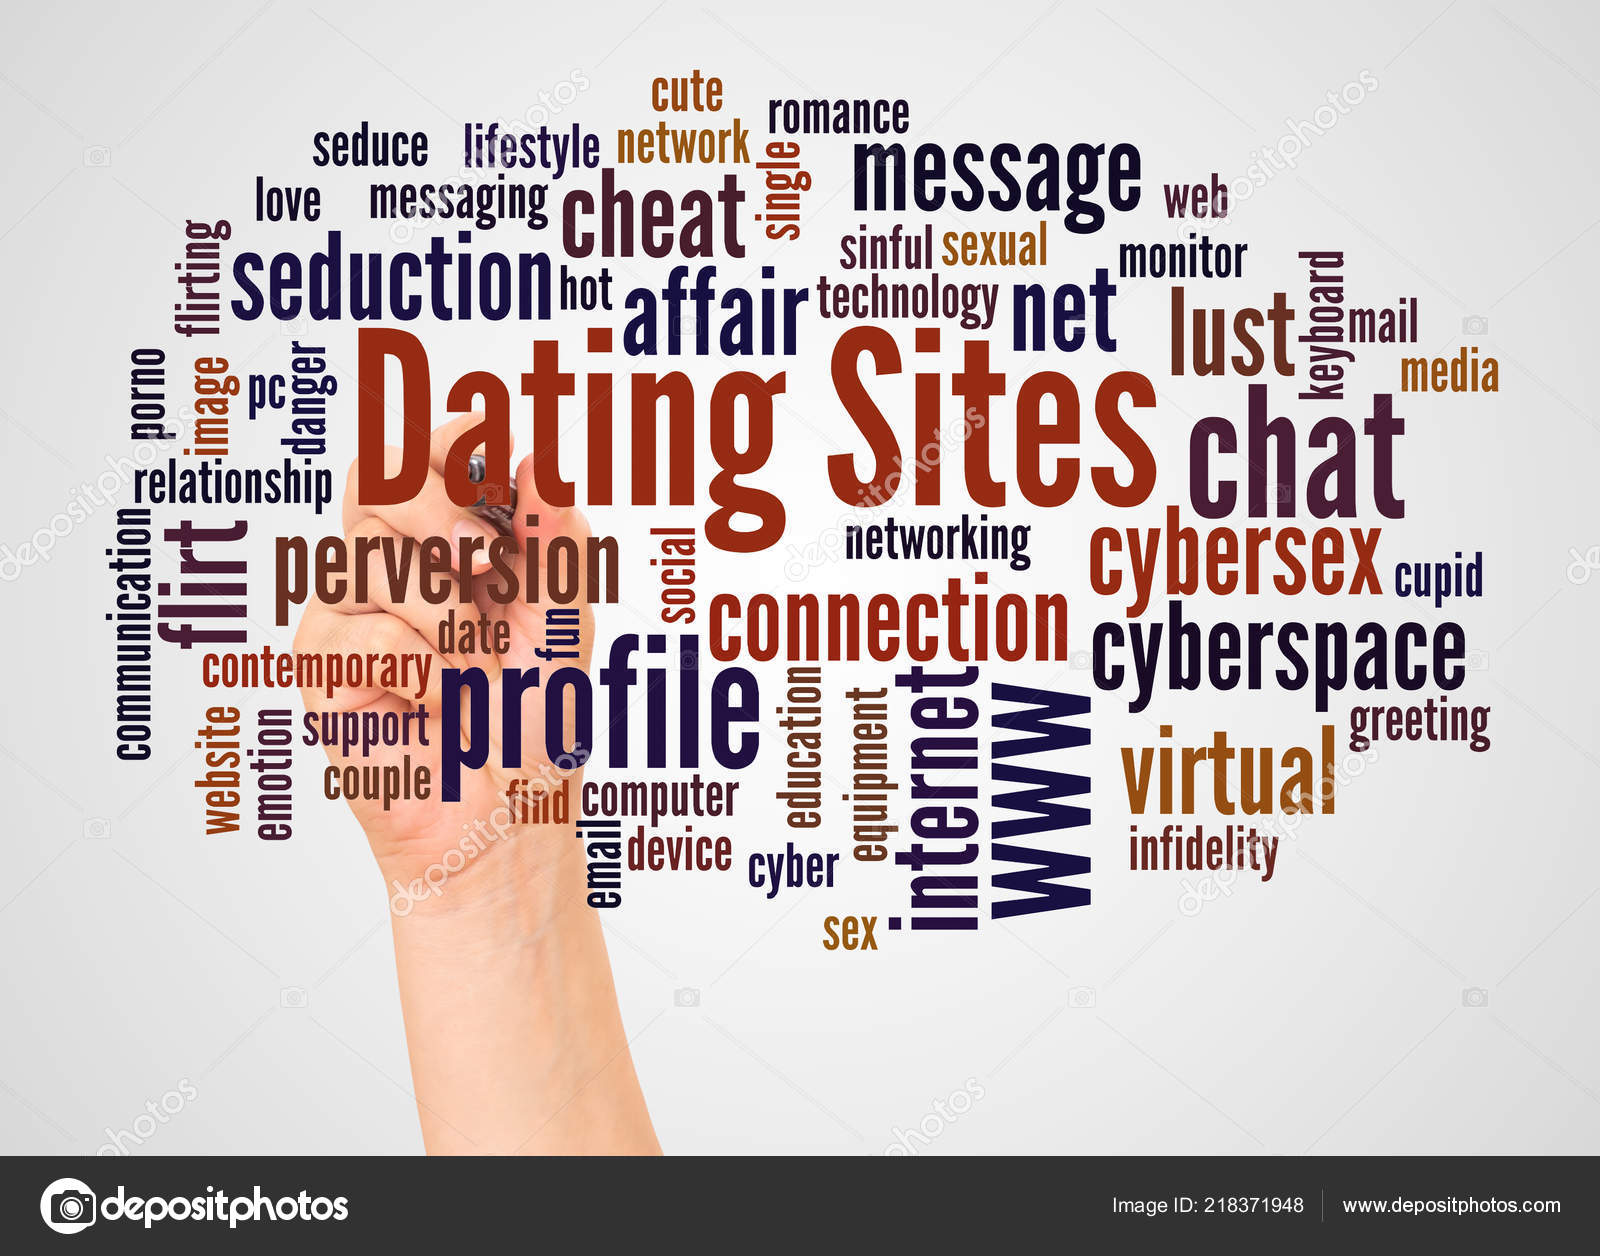 Cyber Dating sites